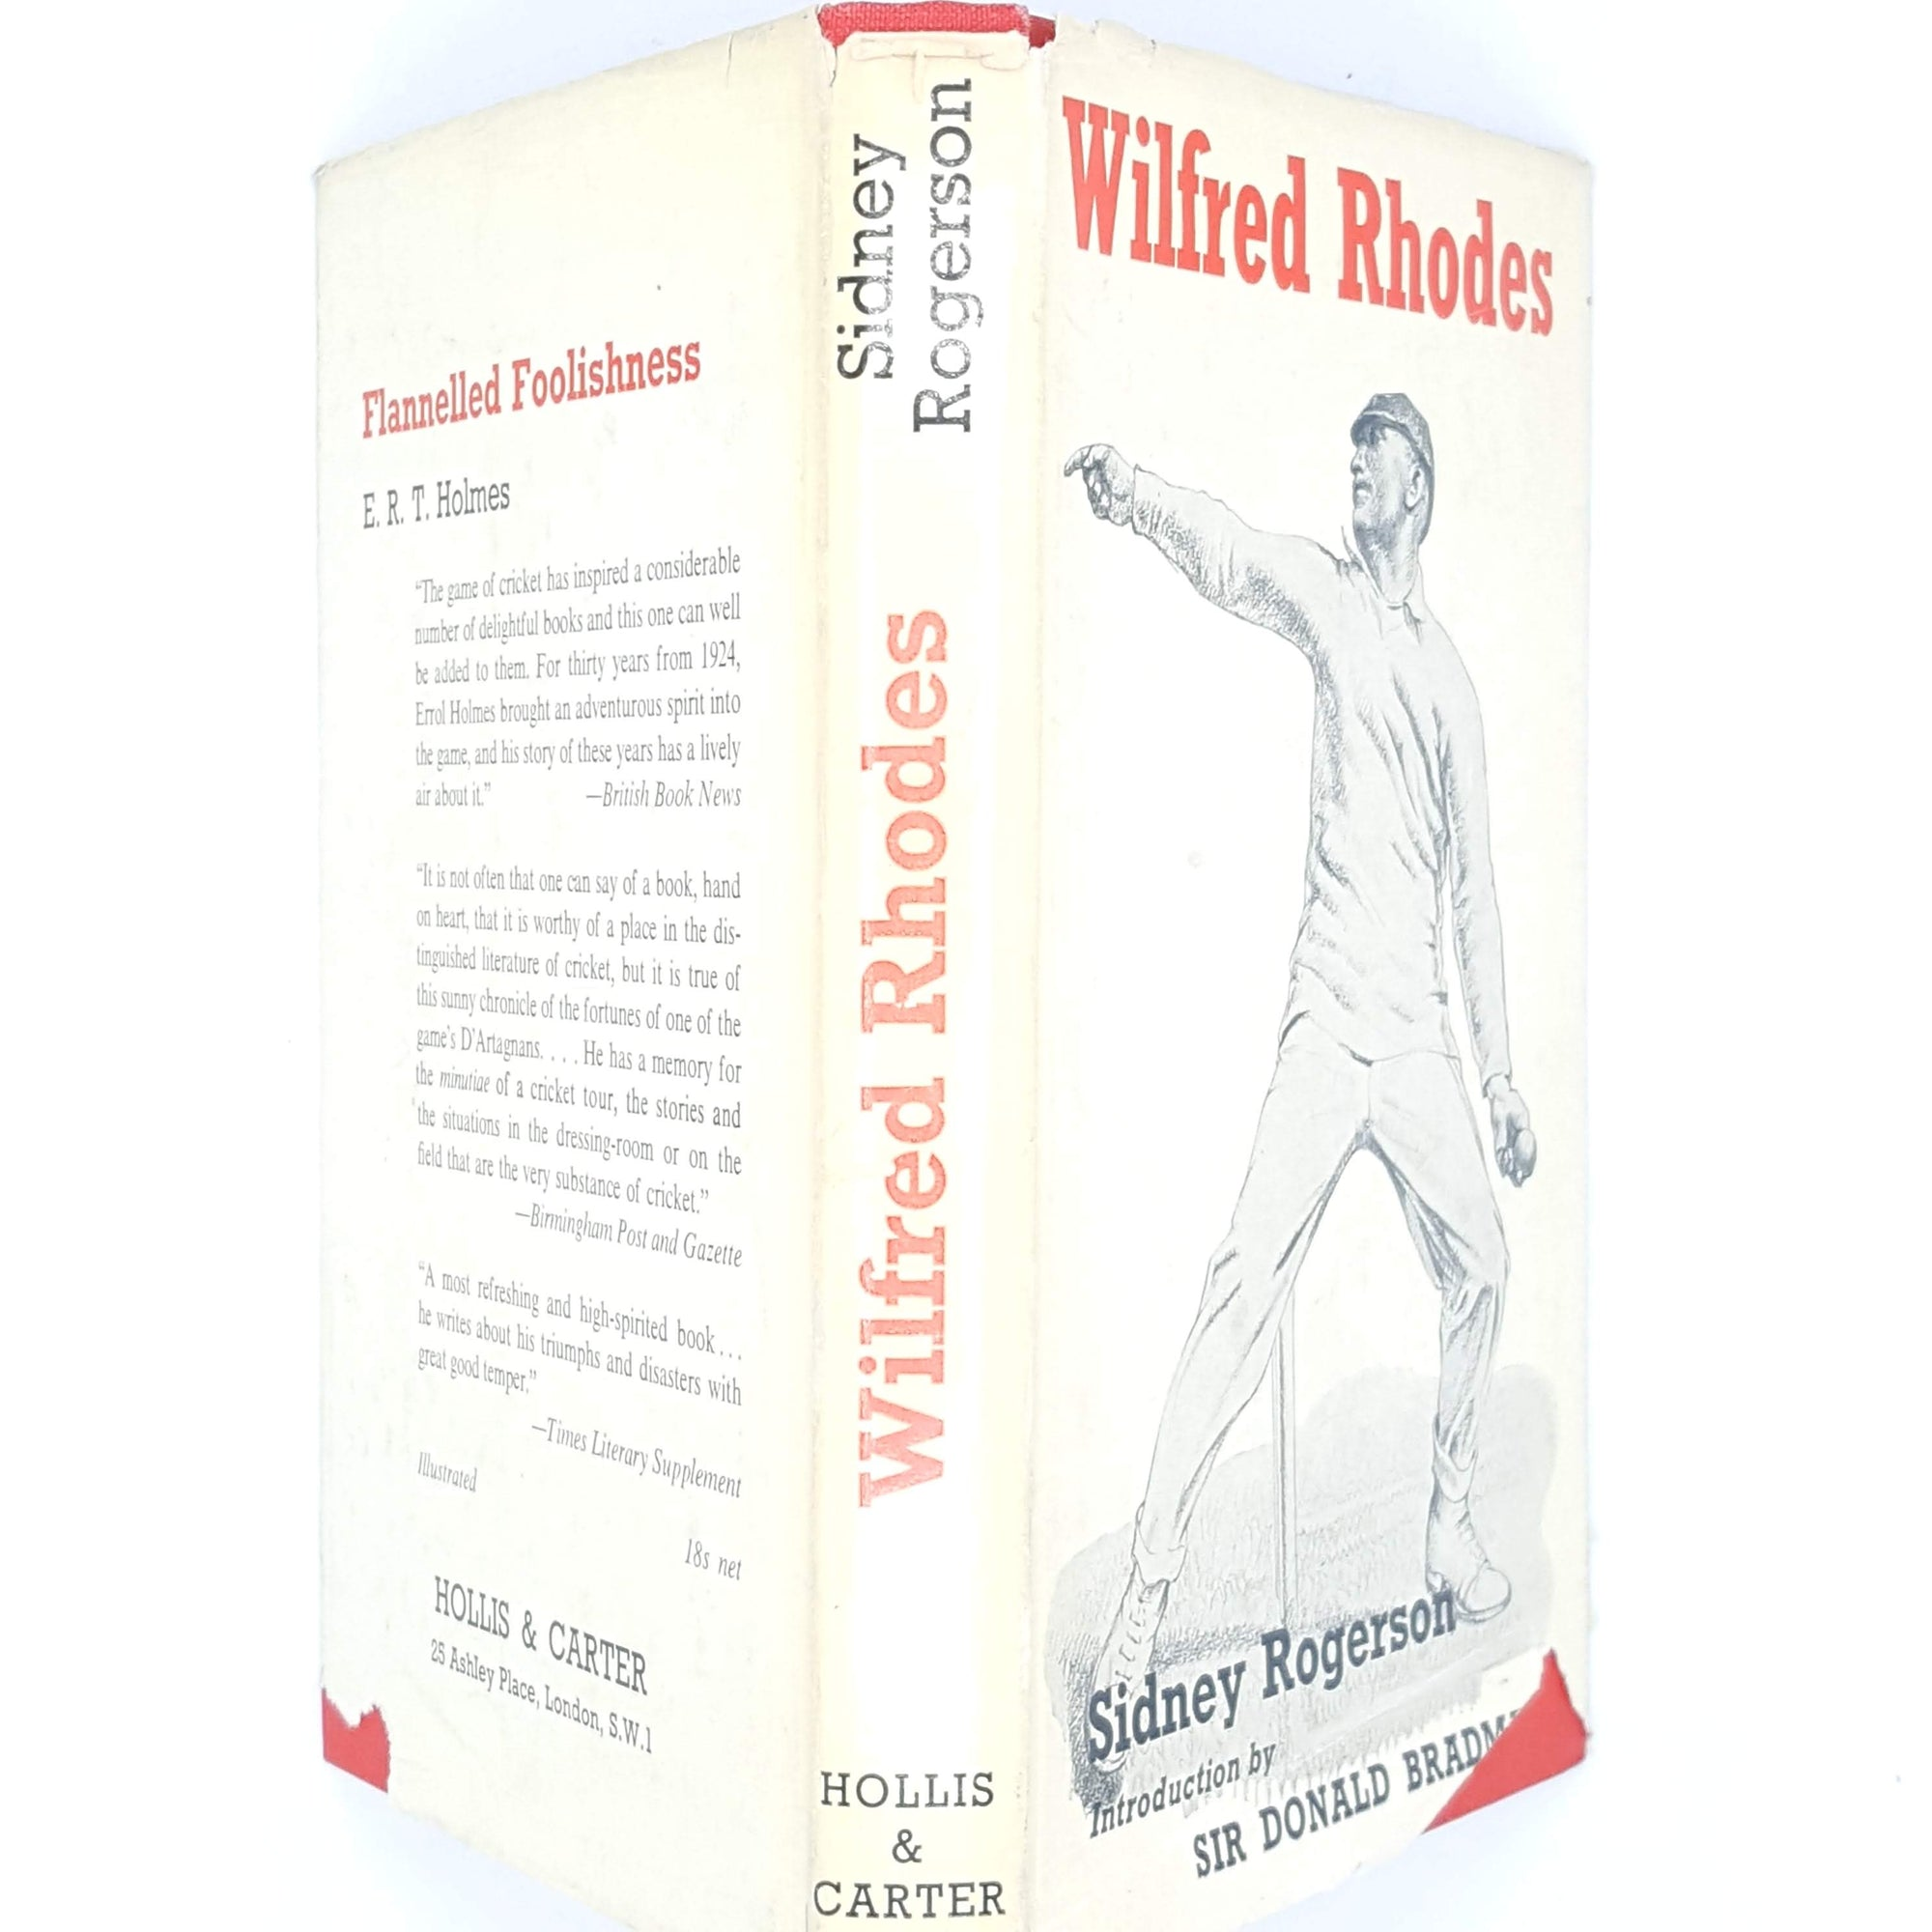 classic-antique-decorative-white-old-biography-red-sport-country-house-library-wilfred-rhodes-cricket-patterned-thrift-vintage-books-sidney-rogerson-